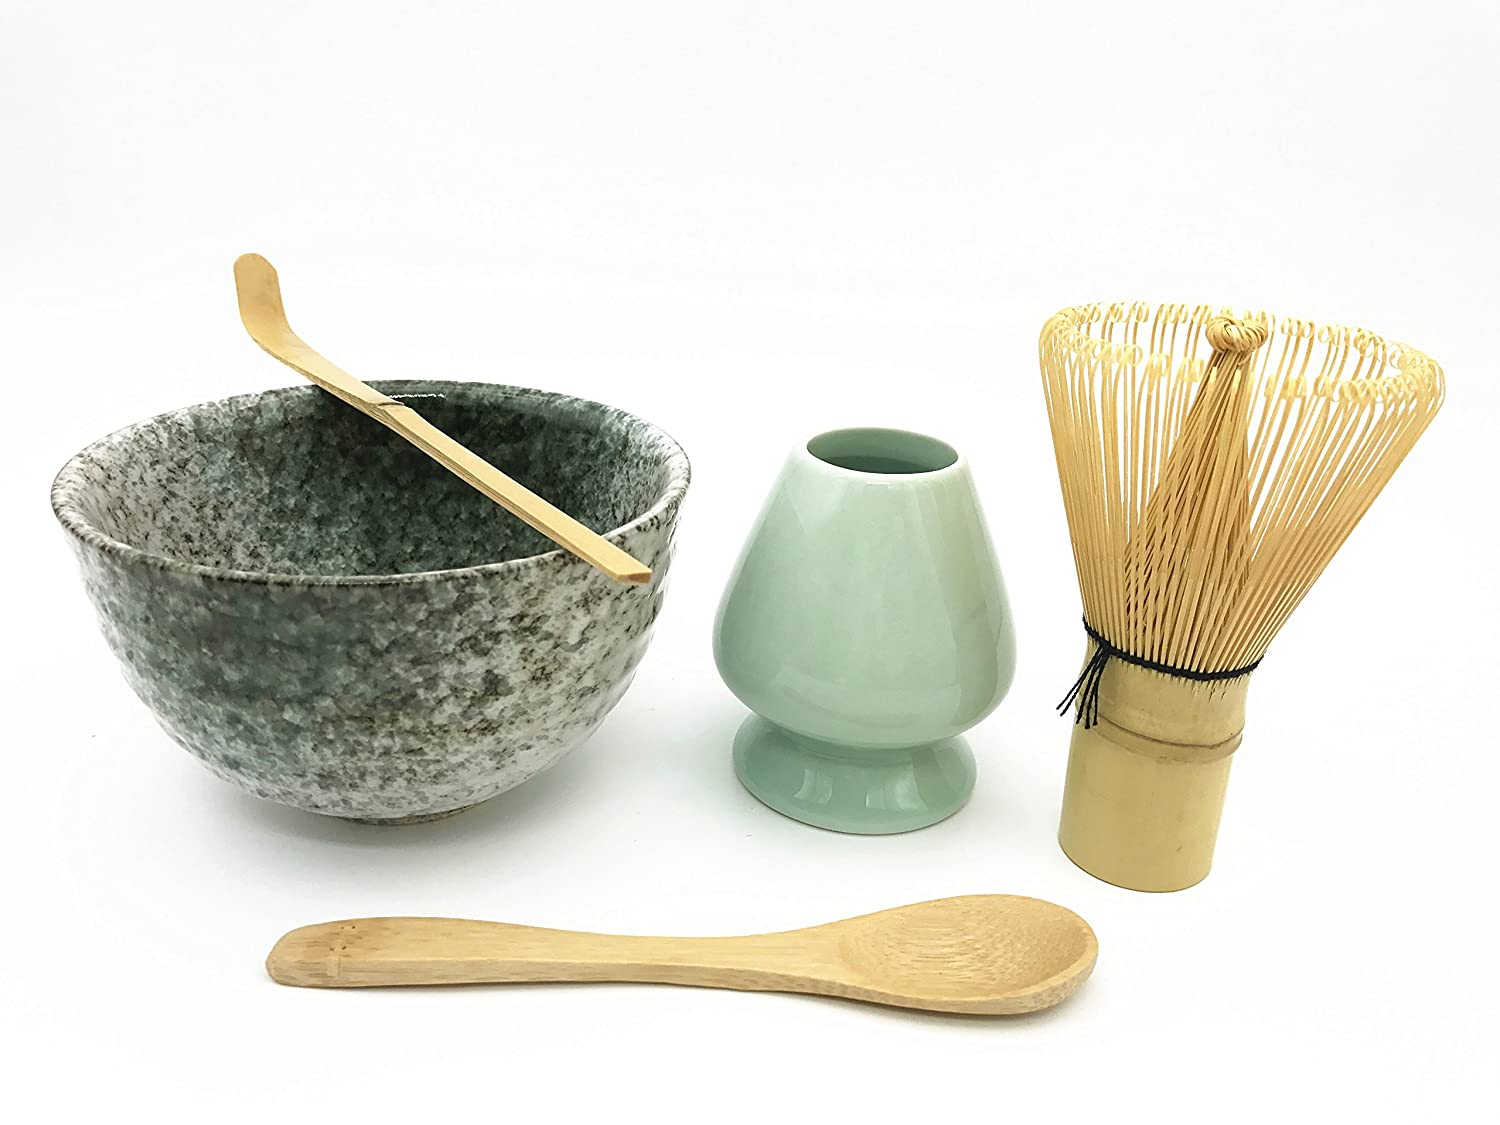 Home Soul Matcha Accessories Set Include 5 items-100 Prongs Bamboo Whisk Chasen,Bamboo Spoon & Scoop,Ceramic Matcha Bowl & Whisk Holder(Jade)